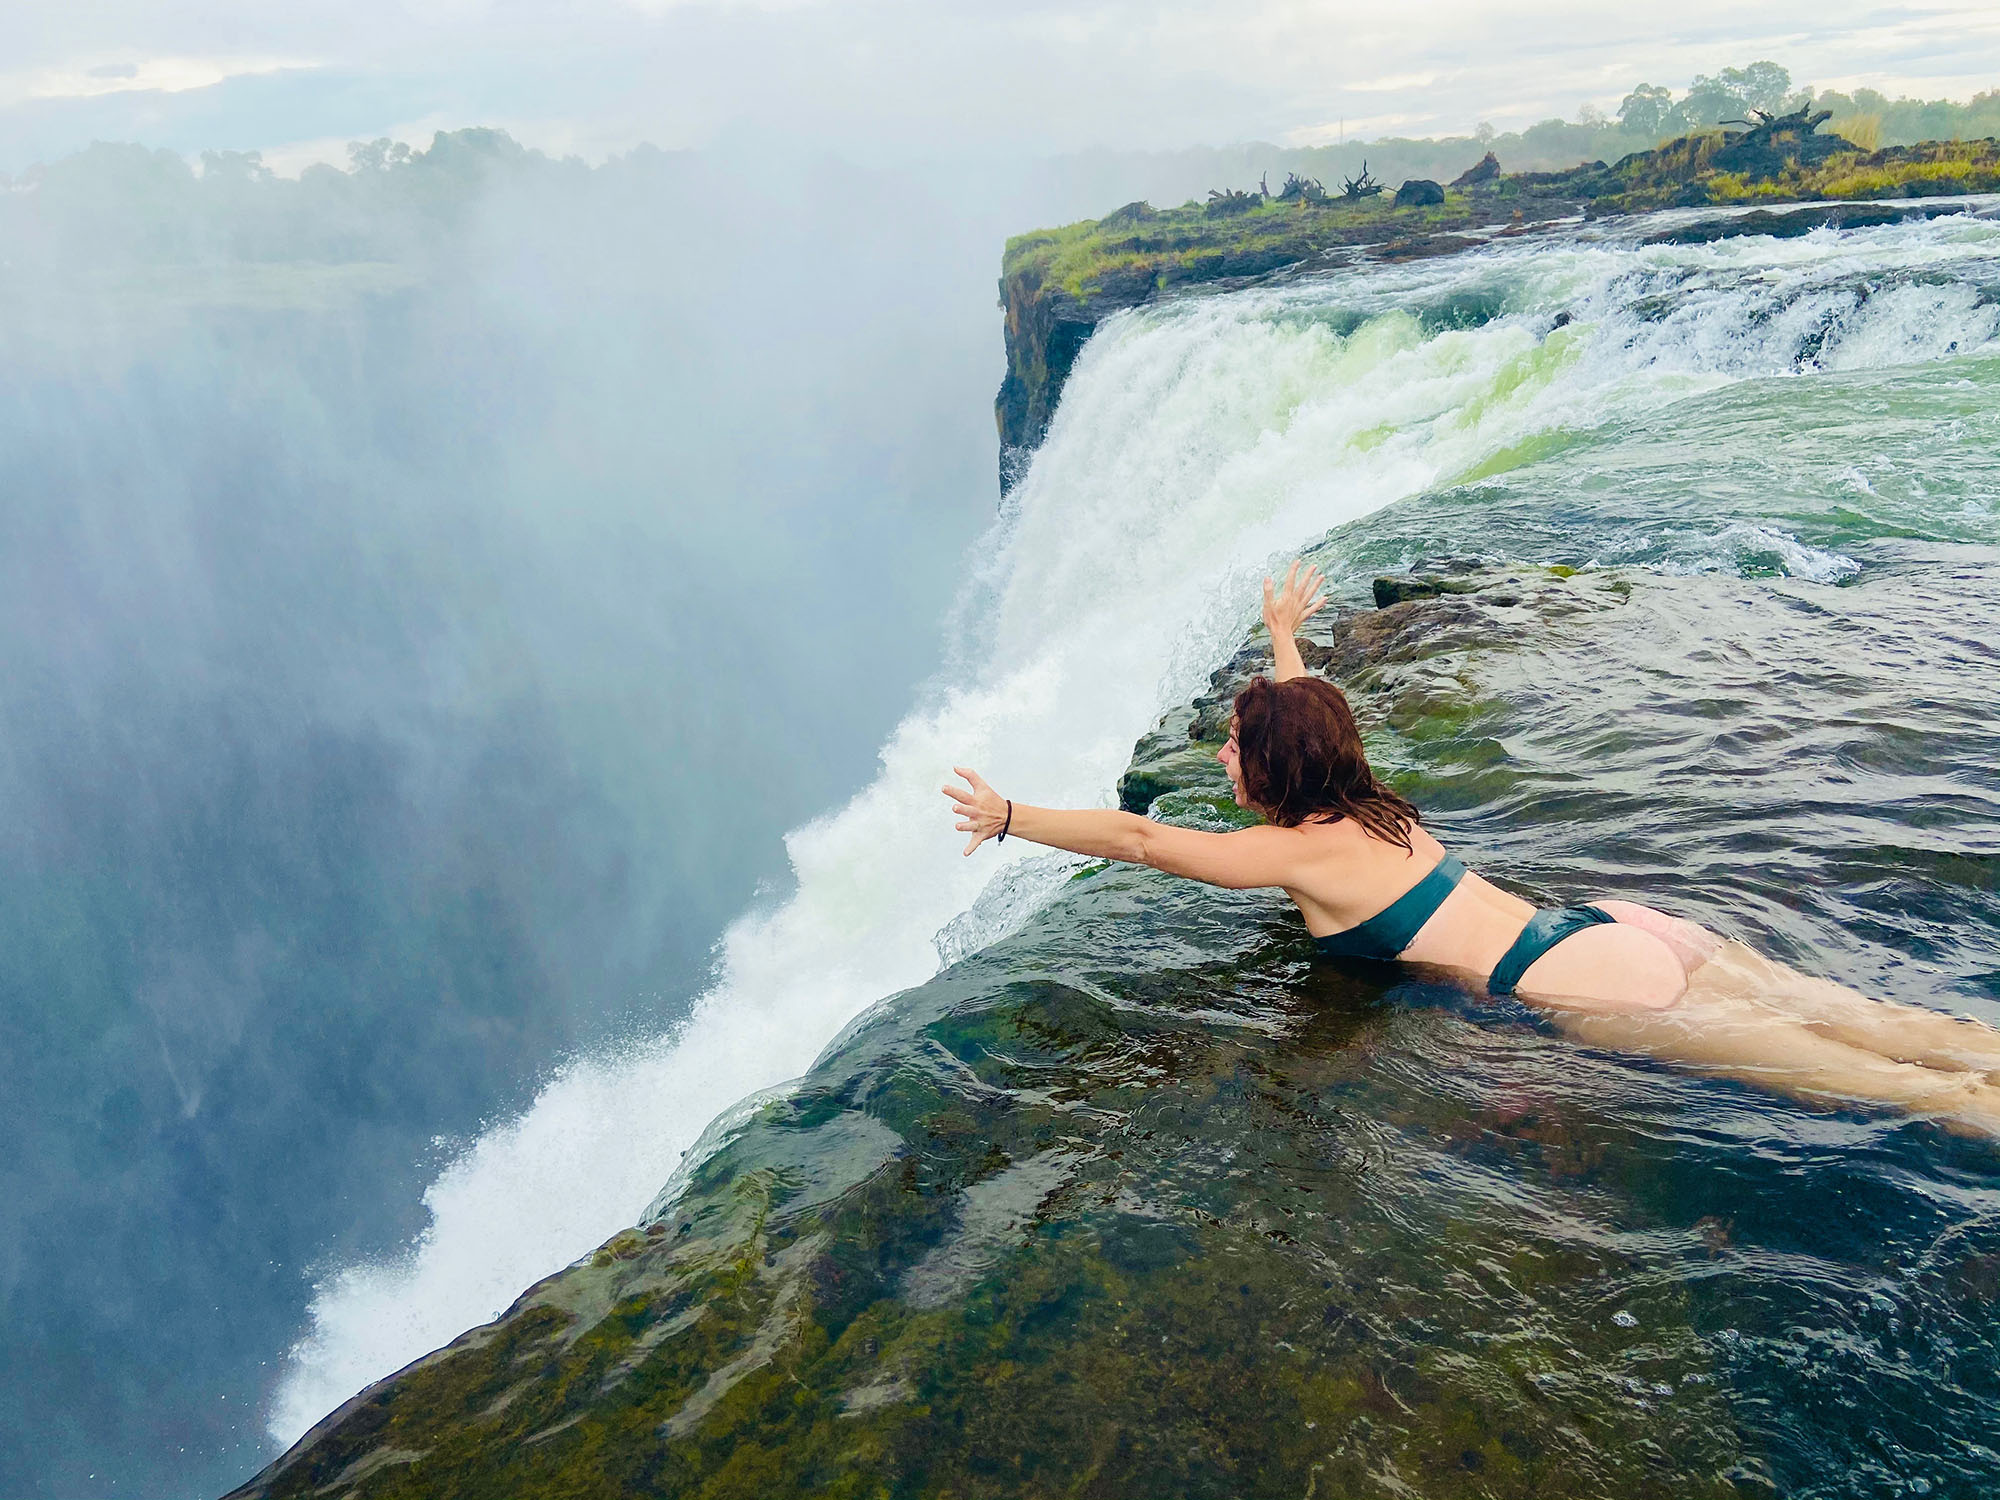 Nessa Varez: Backpacking Around Africa As A Single Woman